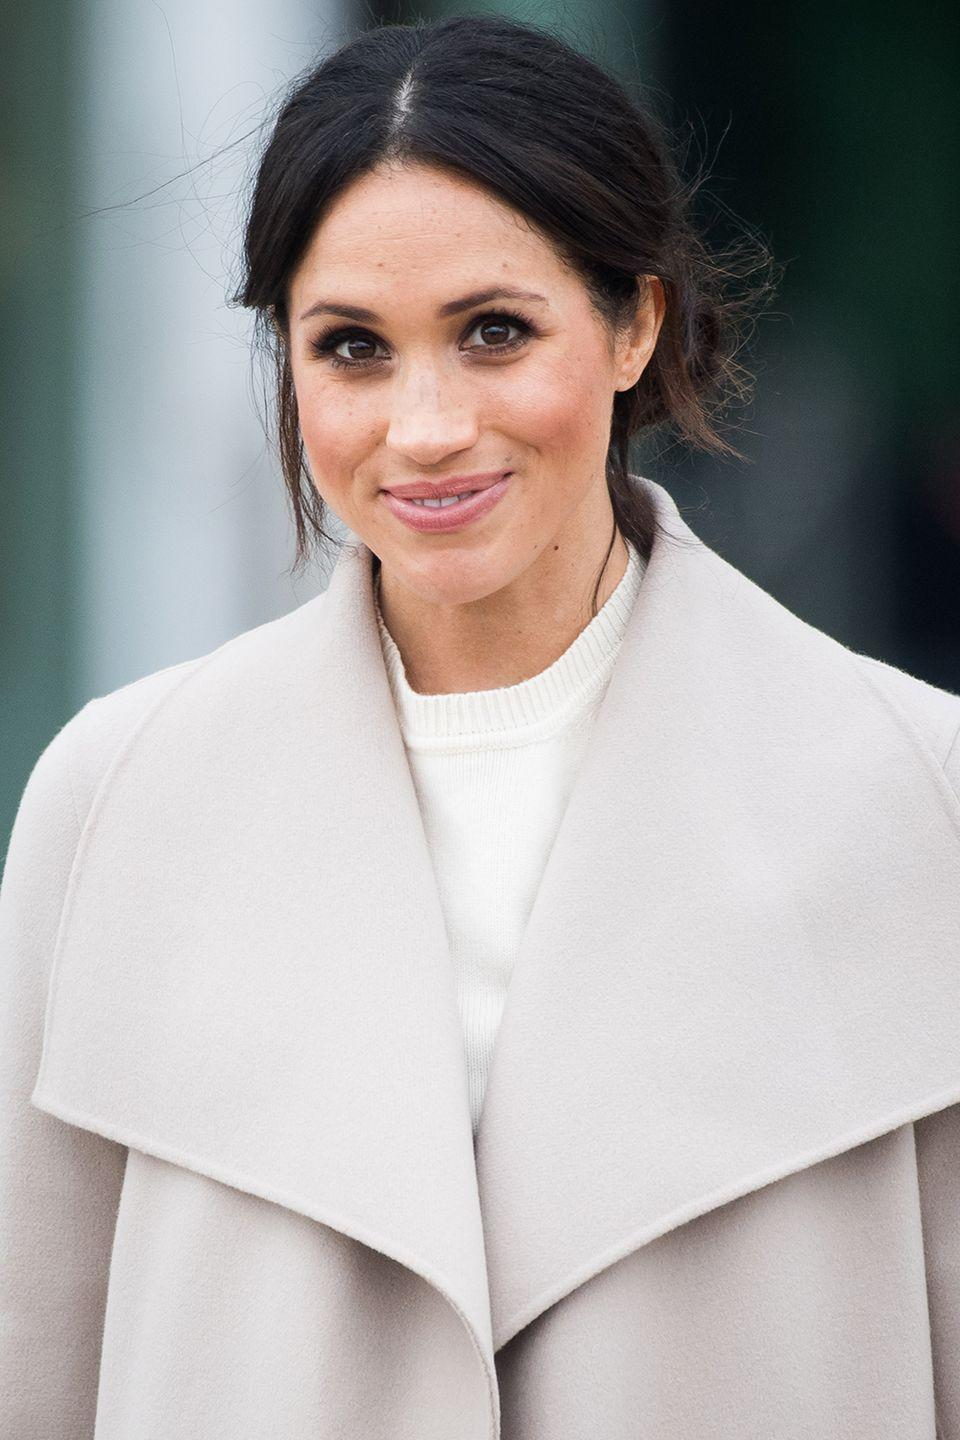 "<p><strong>Born</strong>: Rachel Meghan Markle<br></p><p>It's now common knowledge that Meghan Markle's <a href=""https://www.harpersbazaar.com/celebrity/latest/a9916635/meghan-markle-real-name/"" rel=""nofollow noopener"" target=""_blank"" data-ylk=""slk:real first name"" class=""link rapid-noclick-resp"">real first name</a> is Rachel, though her birth name doesn't much matter, as she's now <a href=""https://www.harpersbazaar.com/celebrity/latest/a13939431/meghan-markle-royal-title/"" rel=""nofollow noopener"" target=""_blank"" data-ylk=""slk:a Duchess"" class=""link rapid-noclick-resp""> a Duchess</a>.</p>"